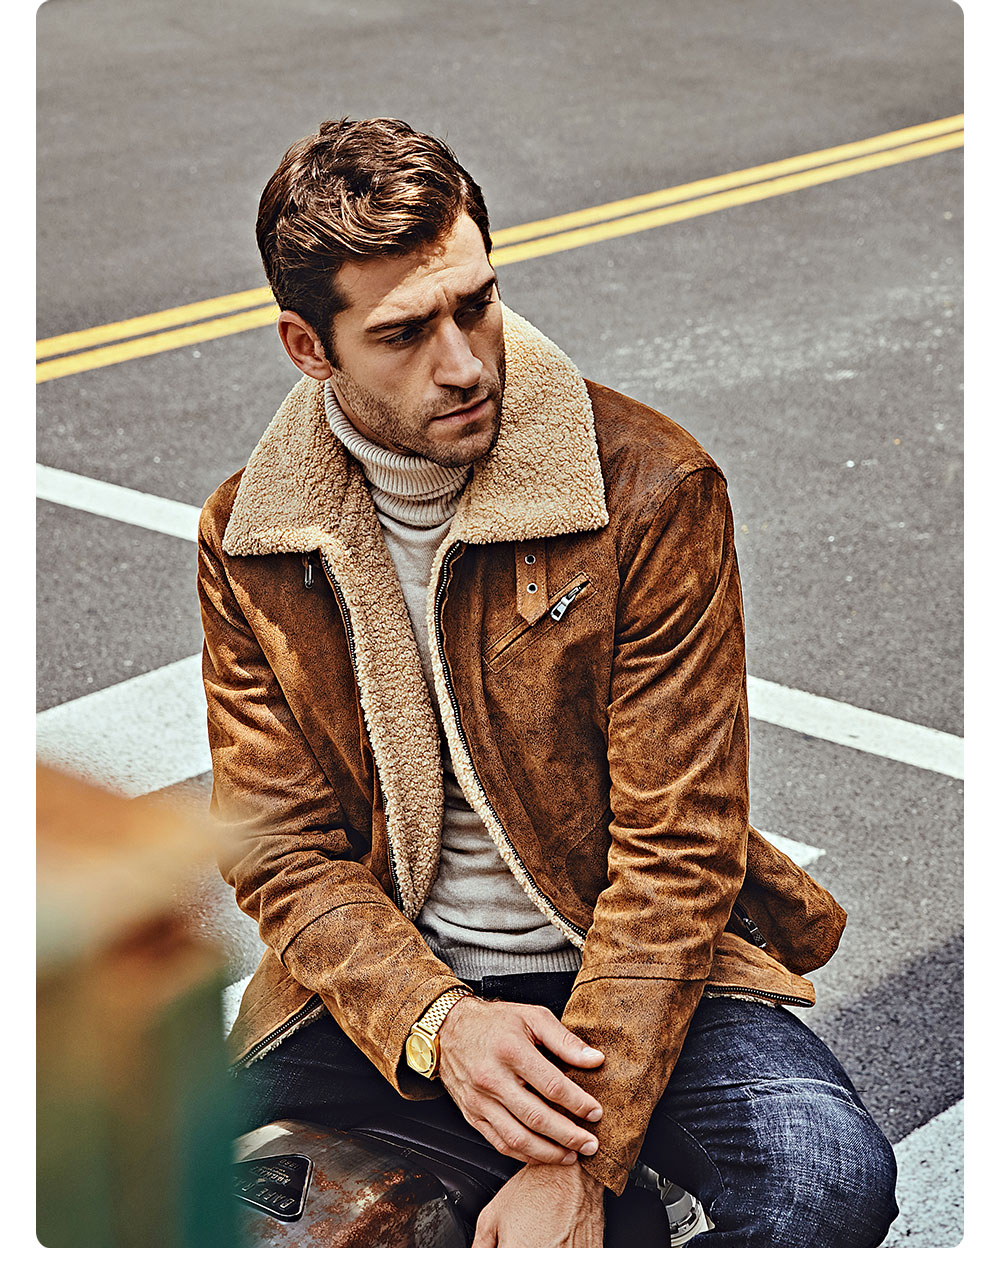 H56369c098c9d48d3afc96429839f126fv FLAVOR New Men's Genuine Leather Motorcycle Jacket Pigskin with Faux Shearling Real Leather Jacket Bomber Coat Men